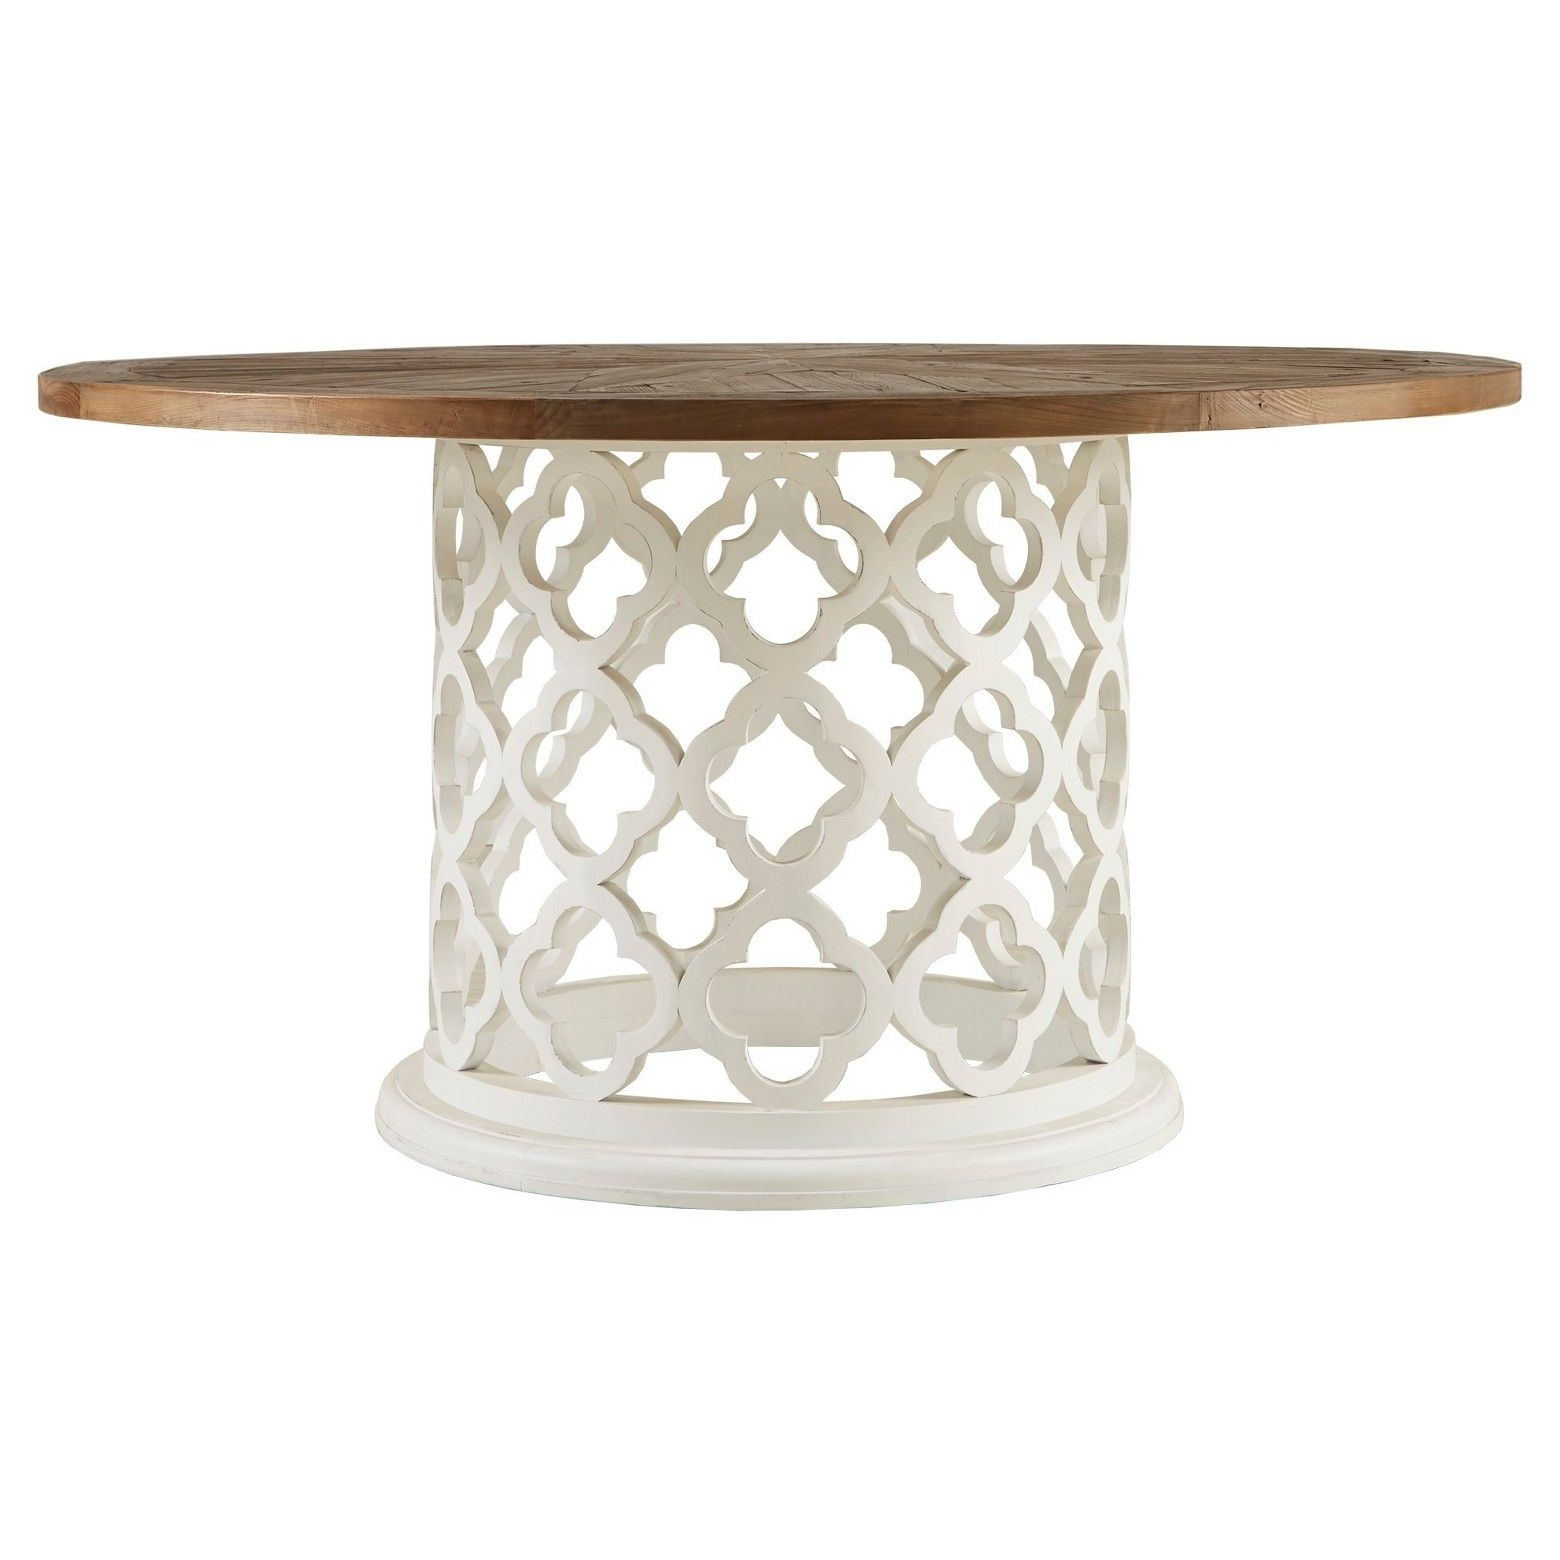 Elegant And Welcoming, The Roslyn Dining Table From Inspire Q Is The  Perfect Centerpiece For